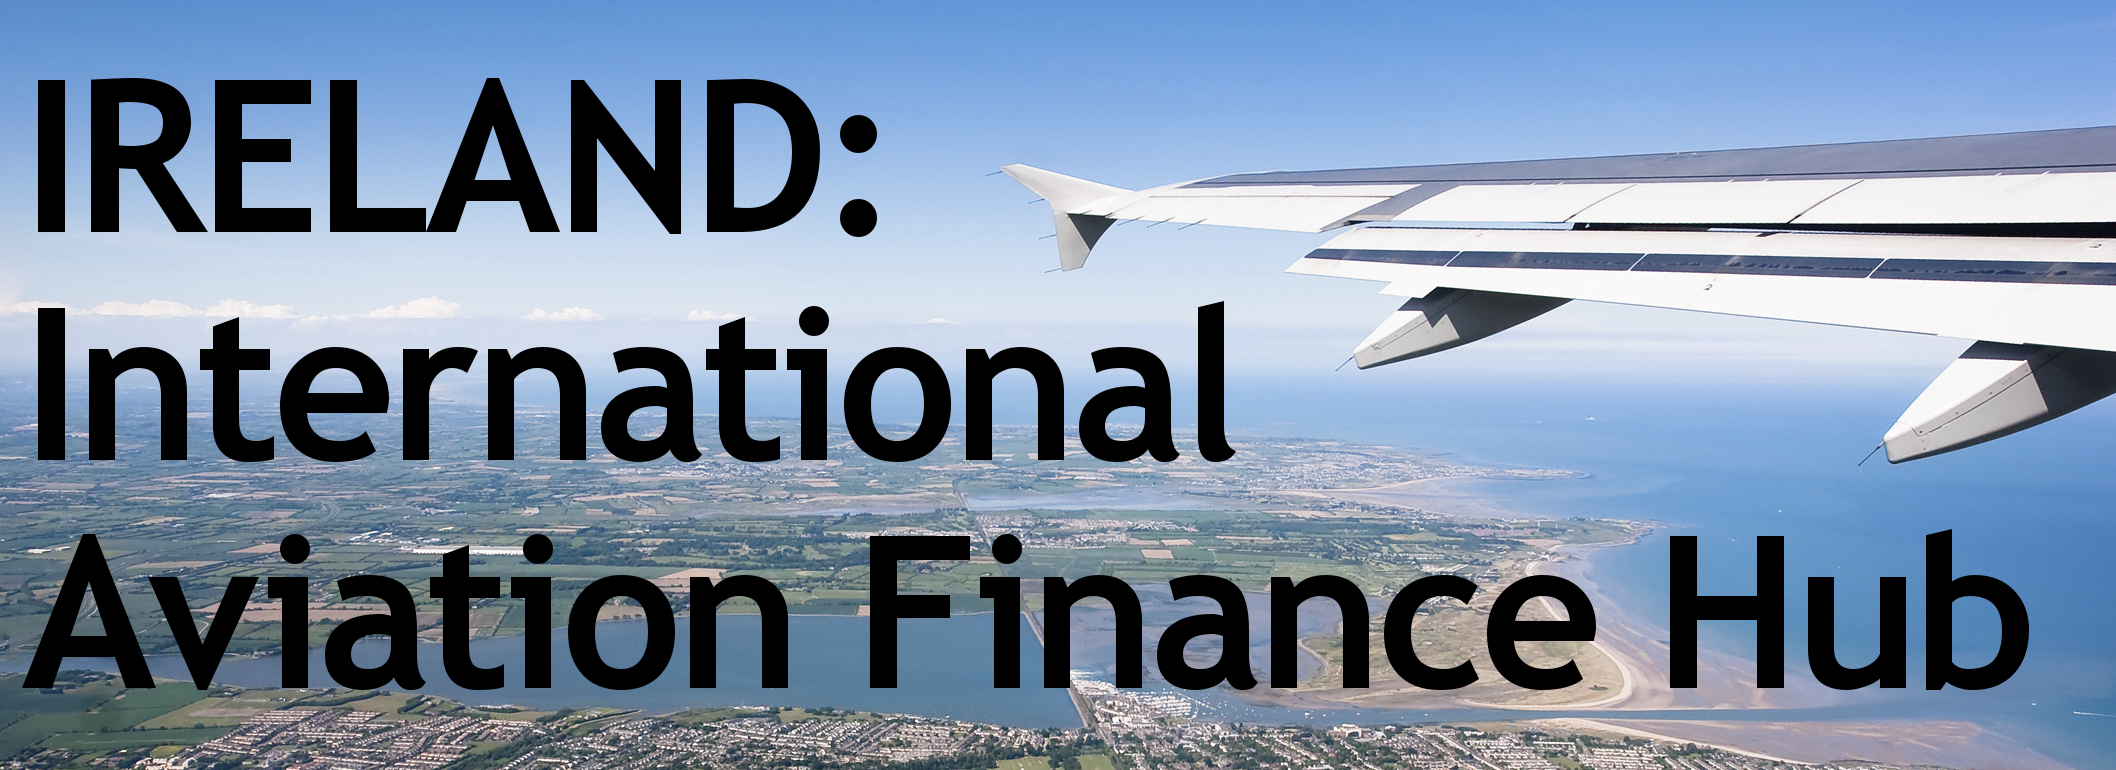 Ireland: Aviation Finance Hub